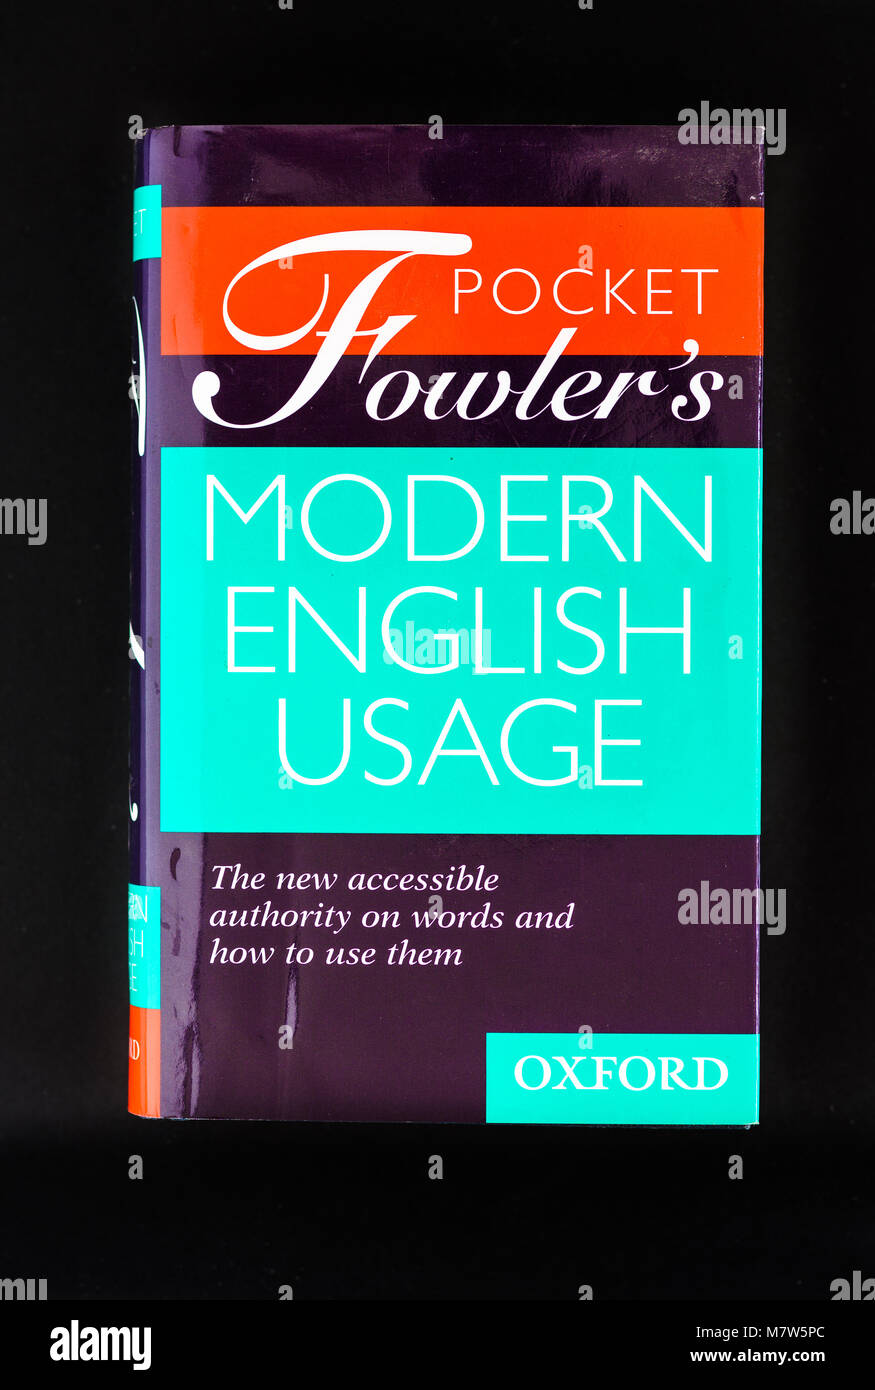 Cover of the fiction book from Oxfod press with the title Pocket Fowler's modern english usage - Stock Image